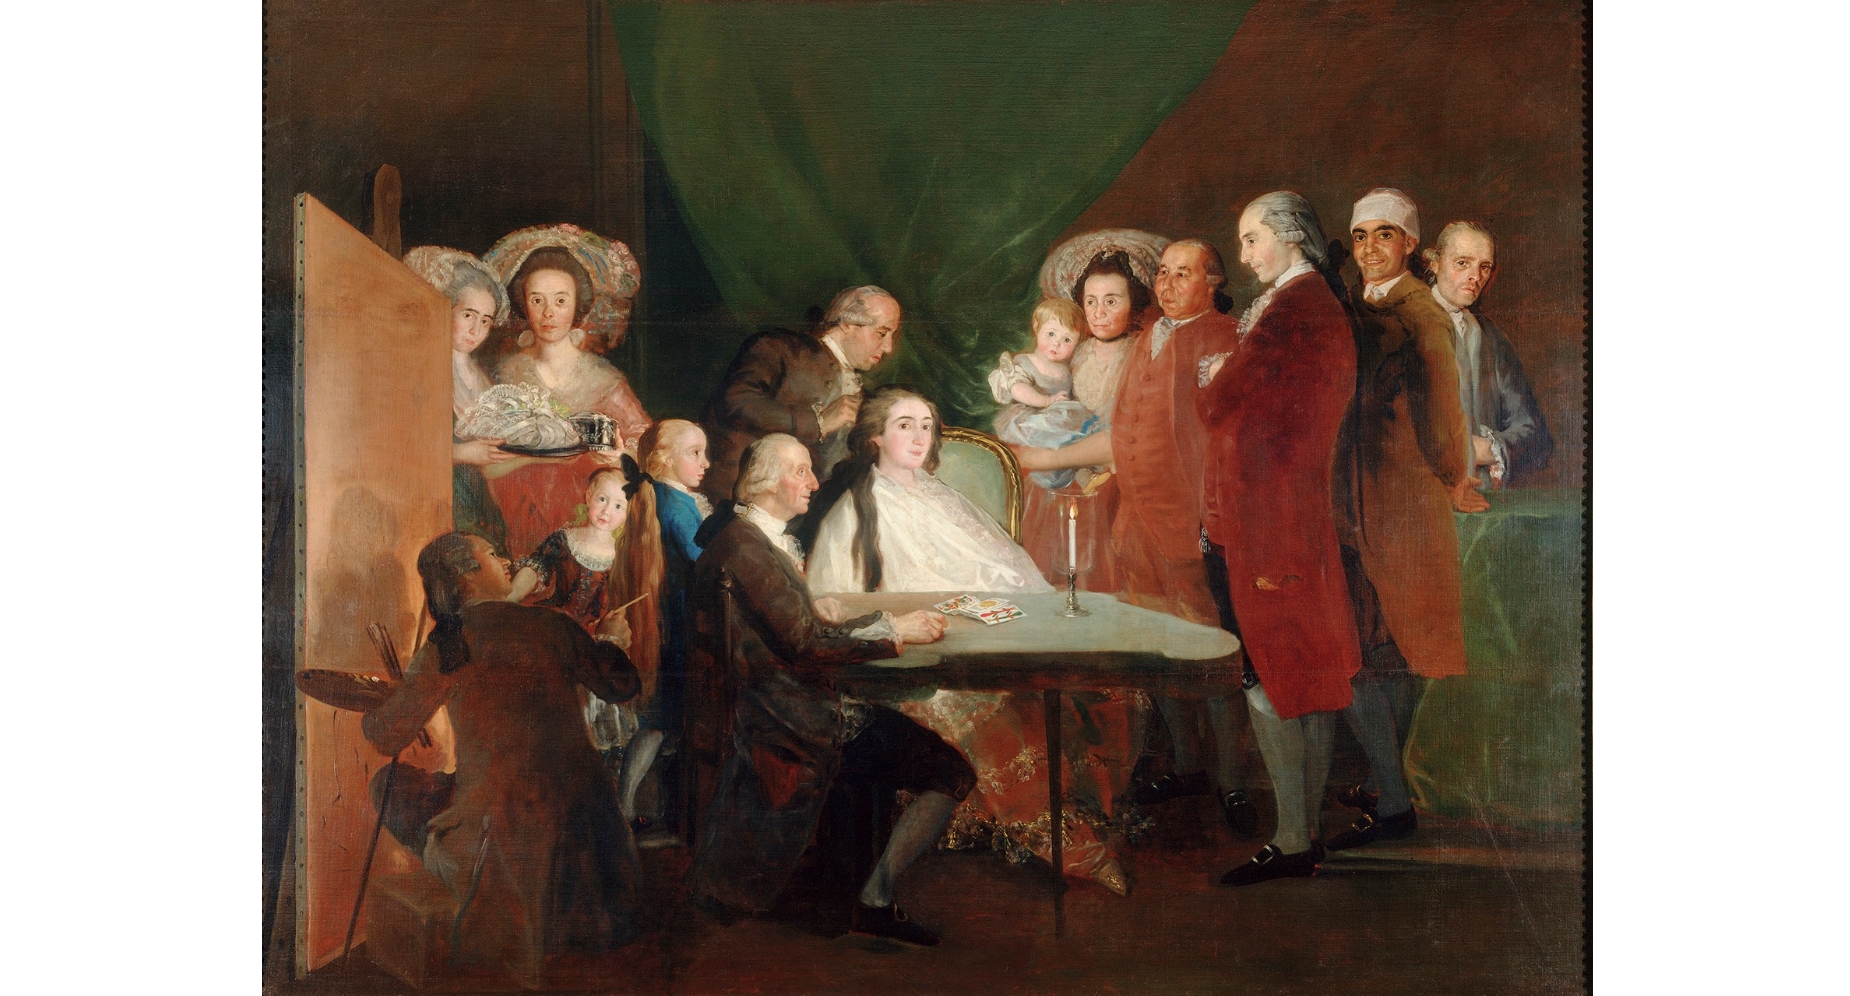 'The Family of the Infante Don Luis de Borbón', 1783-84